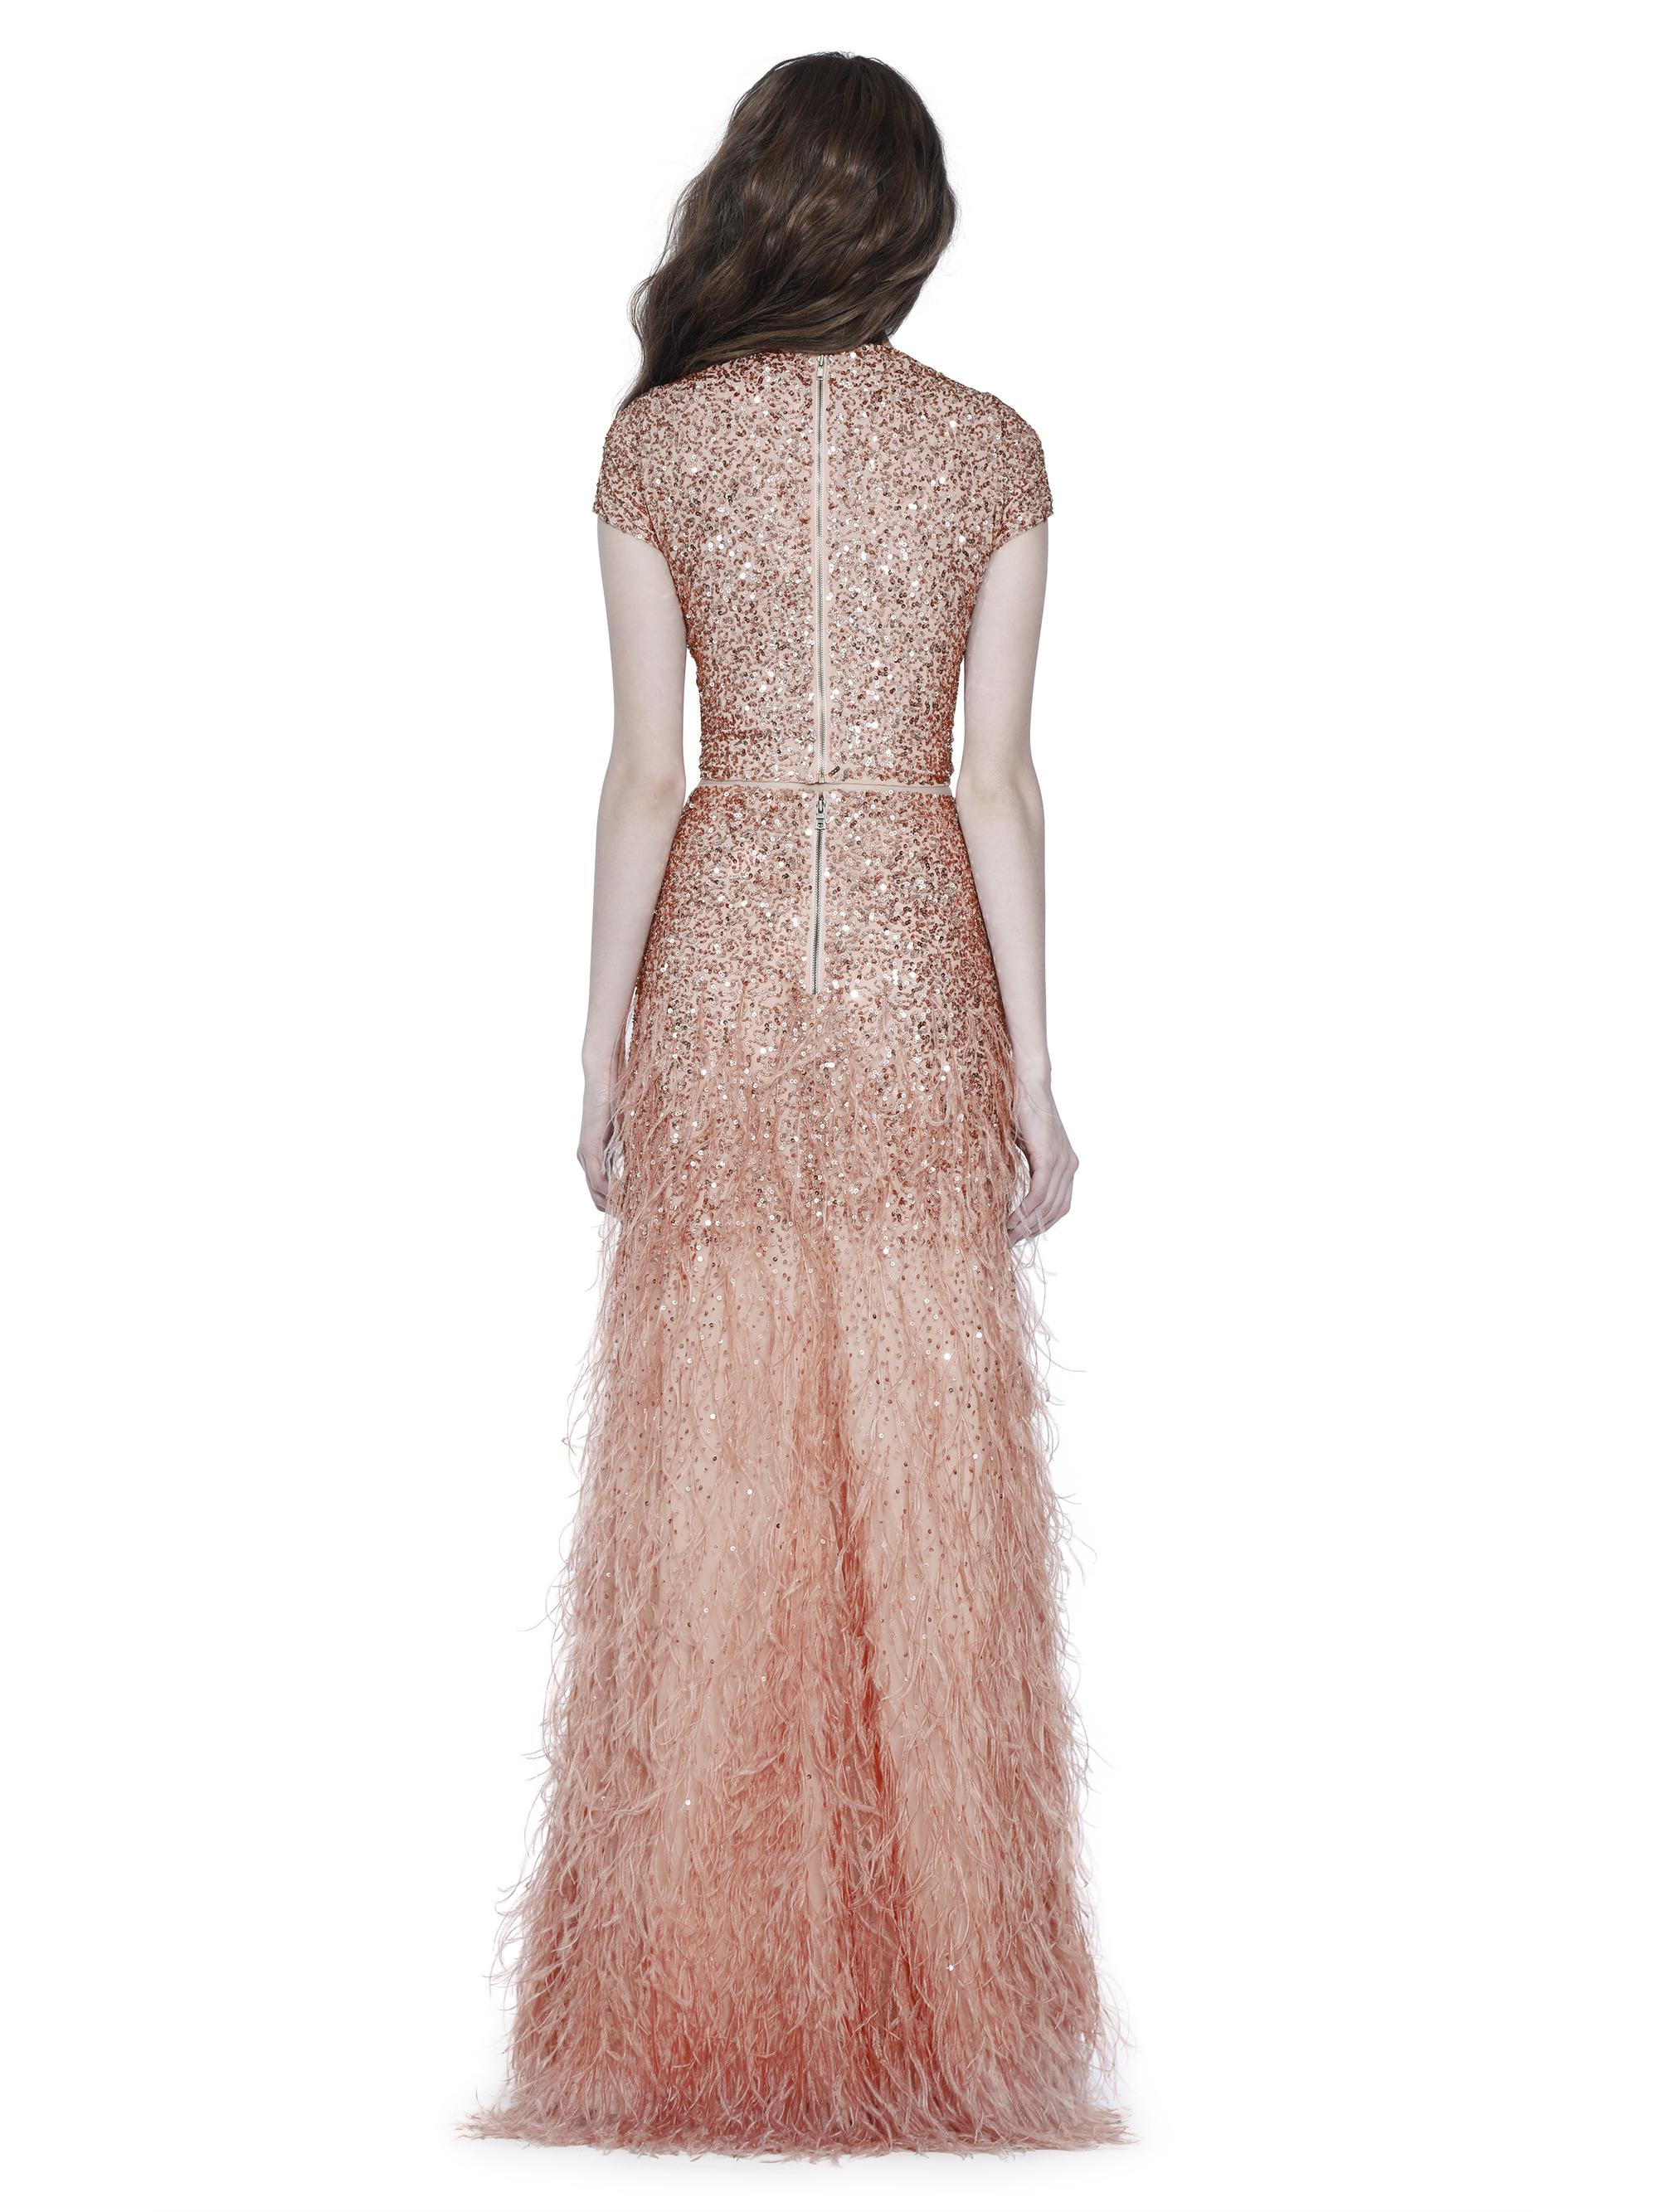 Lyst - Alice + Olivia Ashton Sequin Ball Gown Skirt in Pink